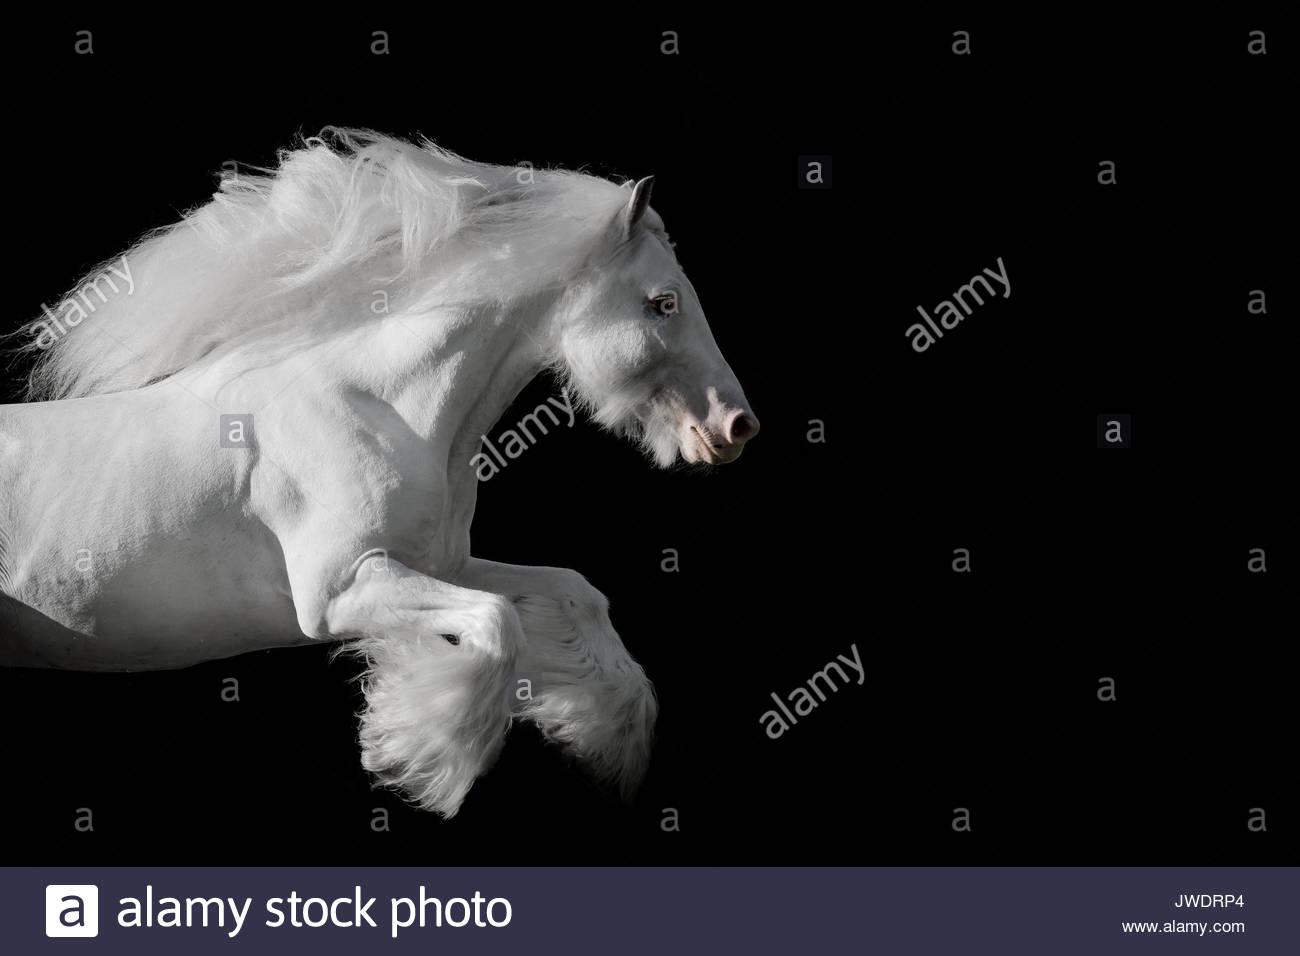 Grey Gypsy Vanner Irish Cob stallion in motion photographed in Italy. - Stock Image